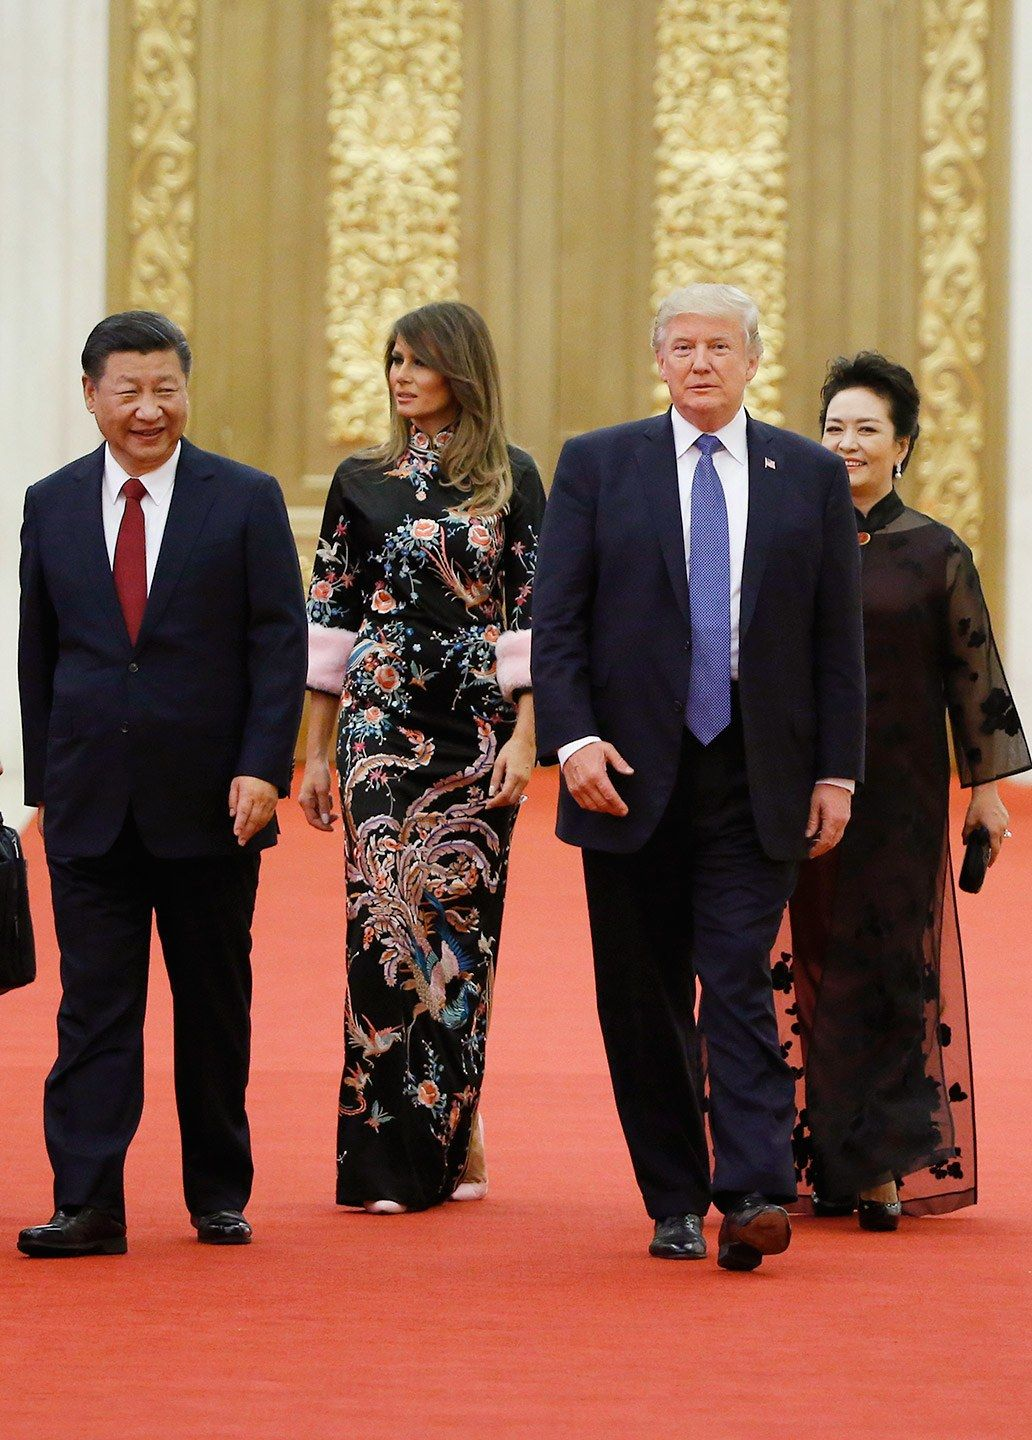 a36ff2f72 Melania and Trump join Chinese president Xi Jinping and the first lady Peng  Liyuan in the Great Hall of the People on November 9th. By Thomas  Peter/Pool/AP ...